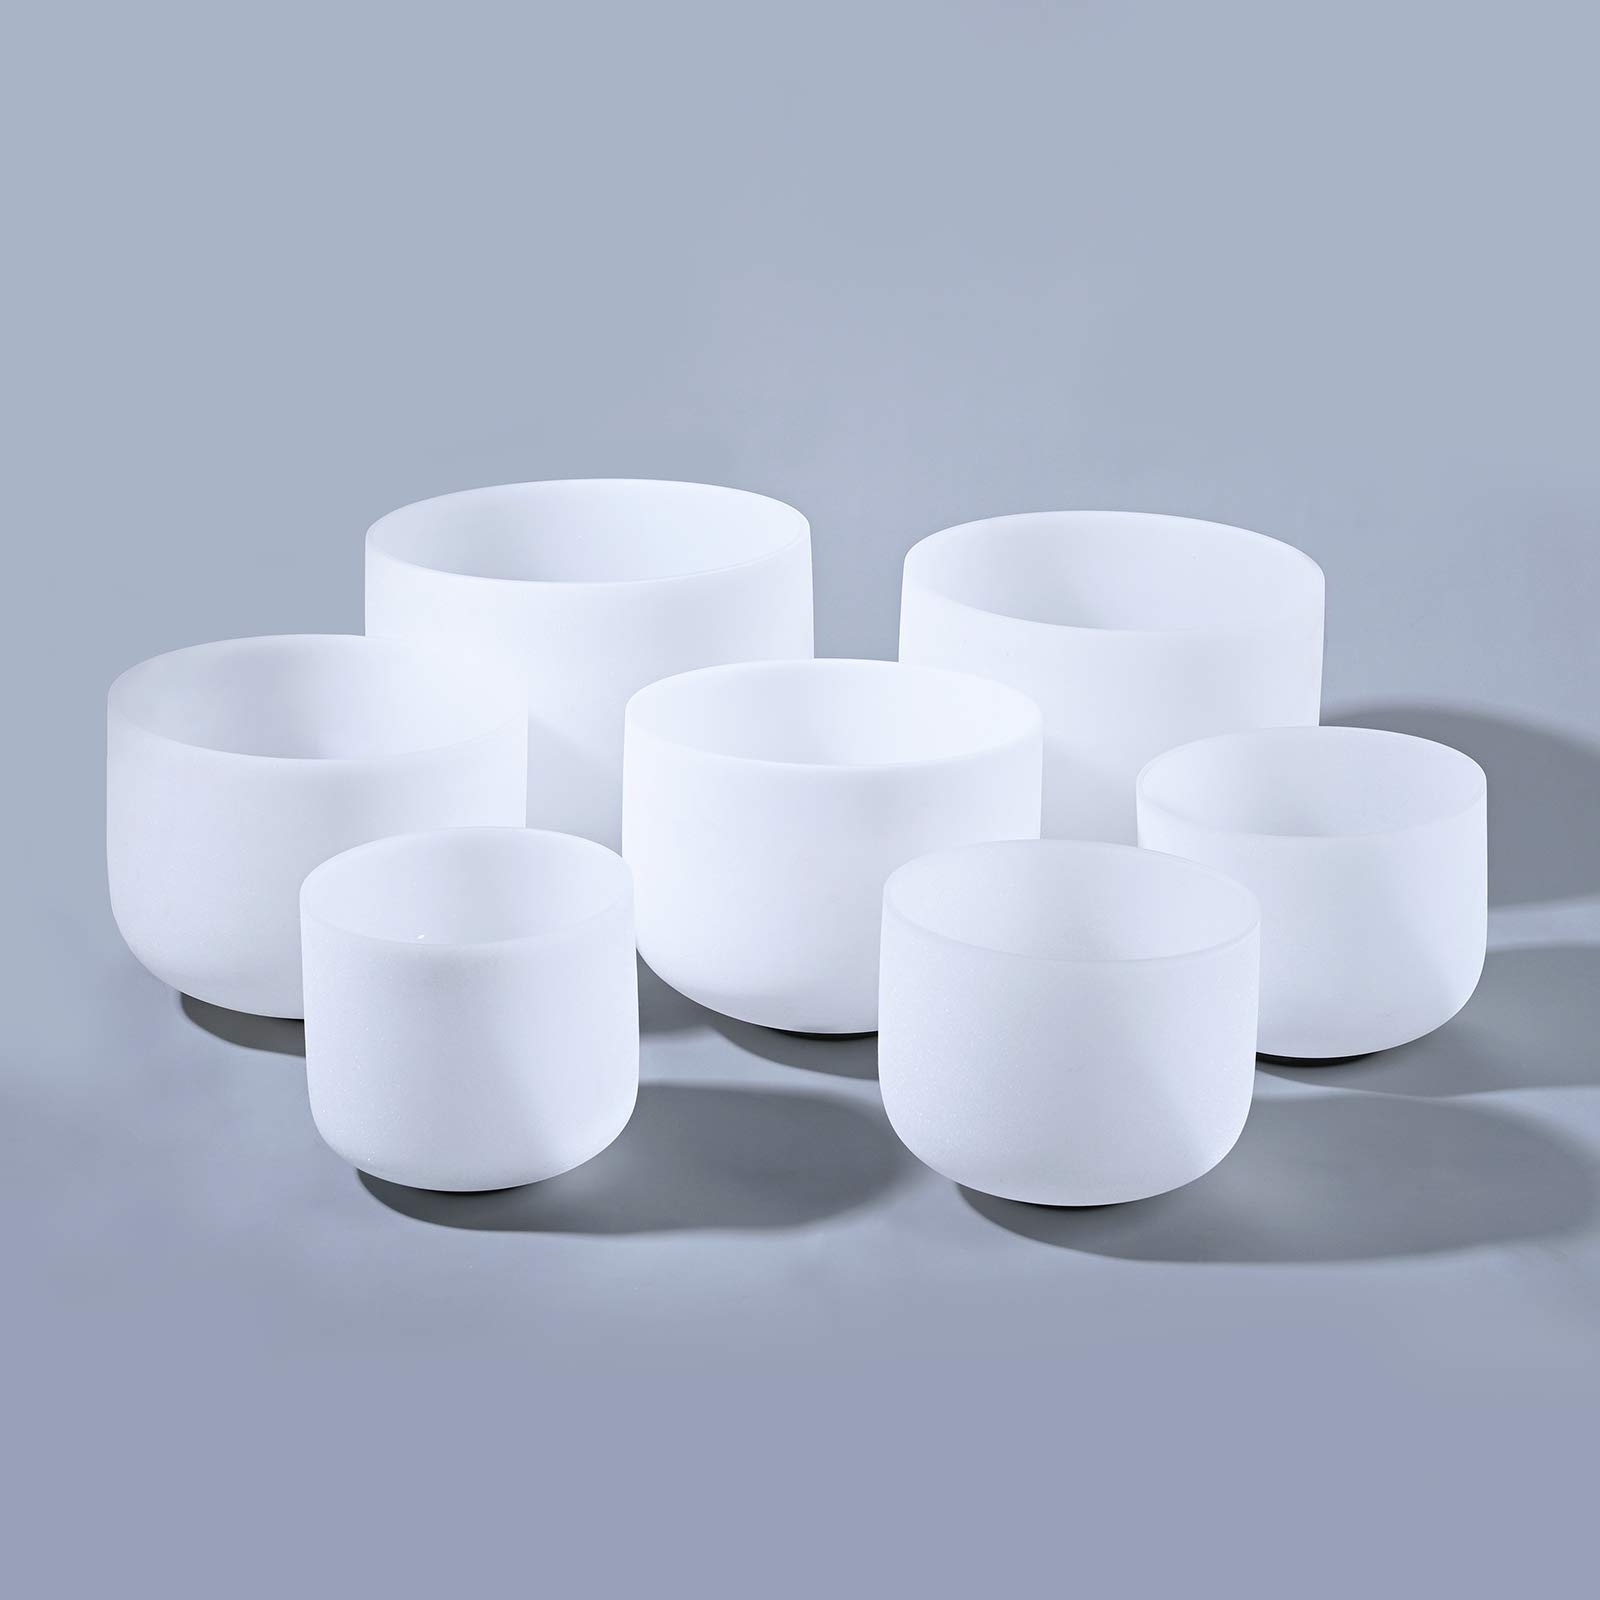 CVNC 6-12 Inch Perfect Pitch Frosted Quartz Crystal Singing Bowls US Shipping